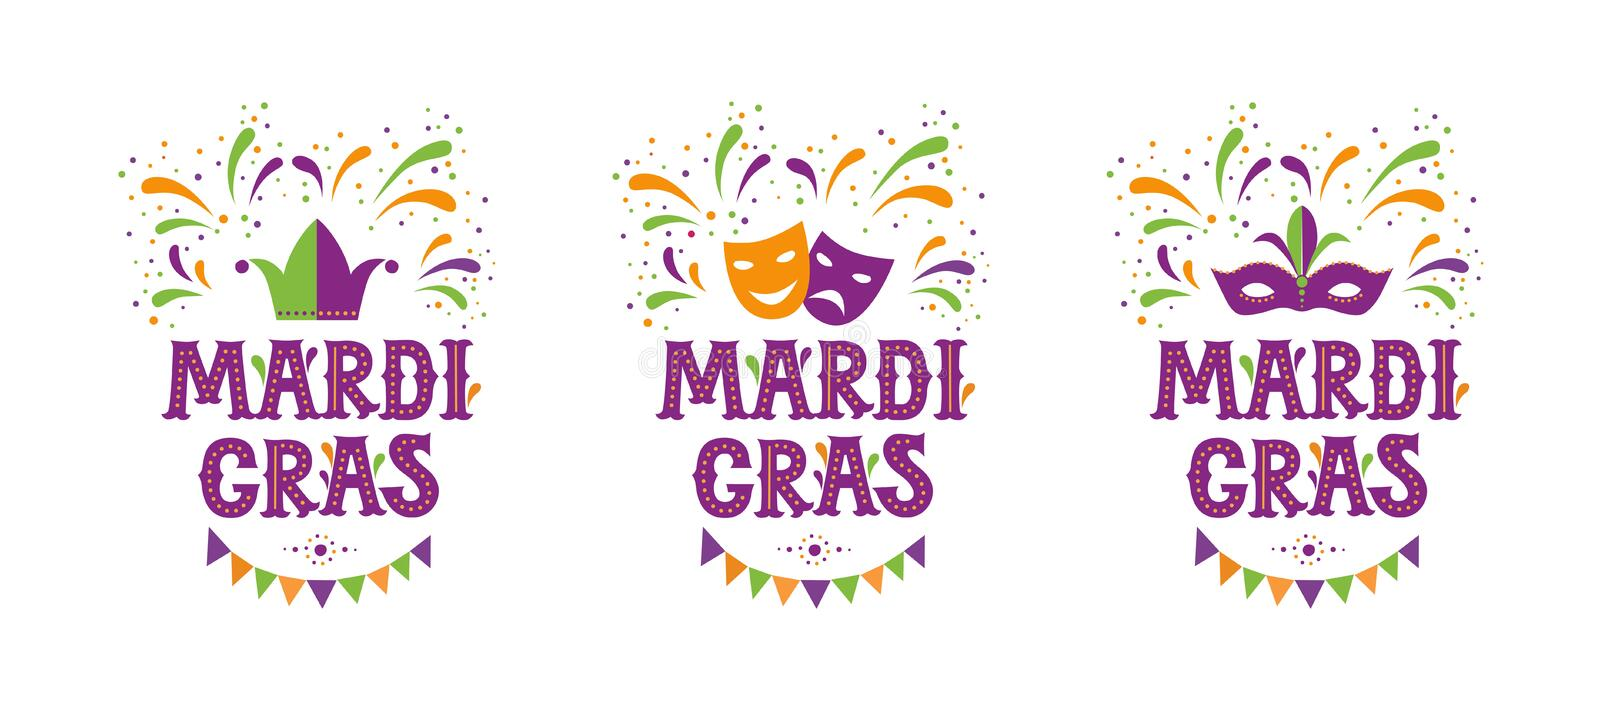 Mardi gras carnival party design royalty free stock image